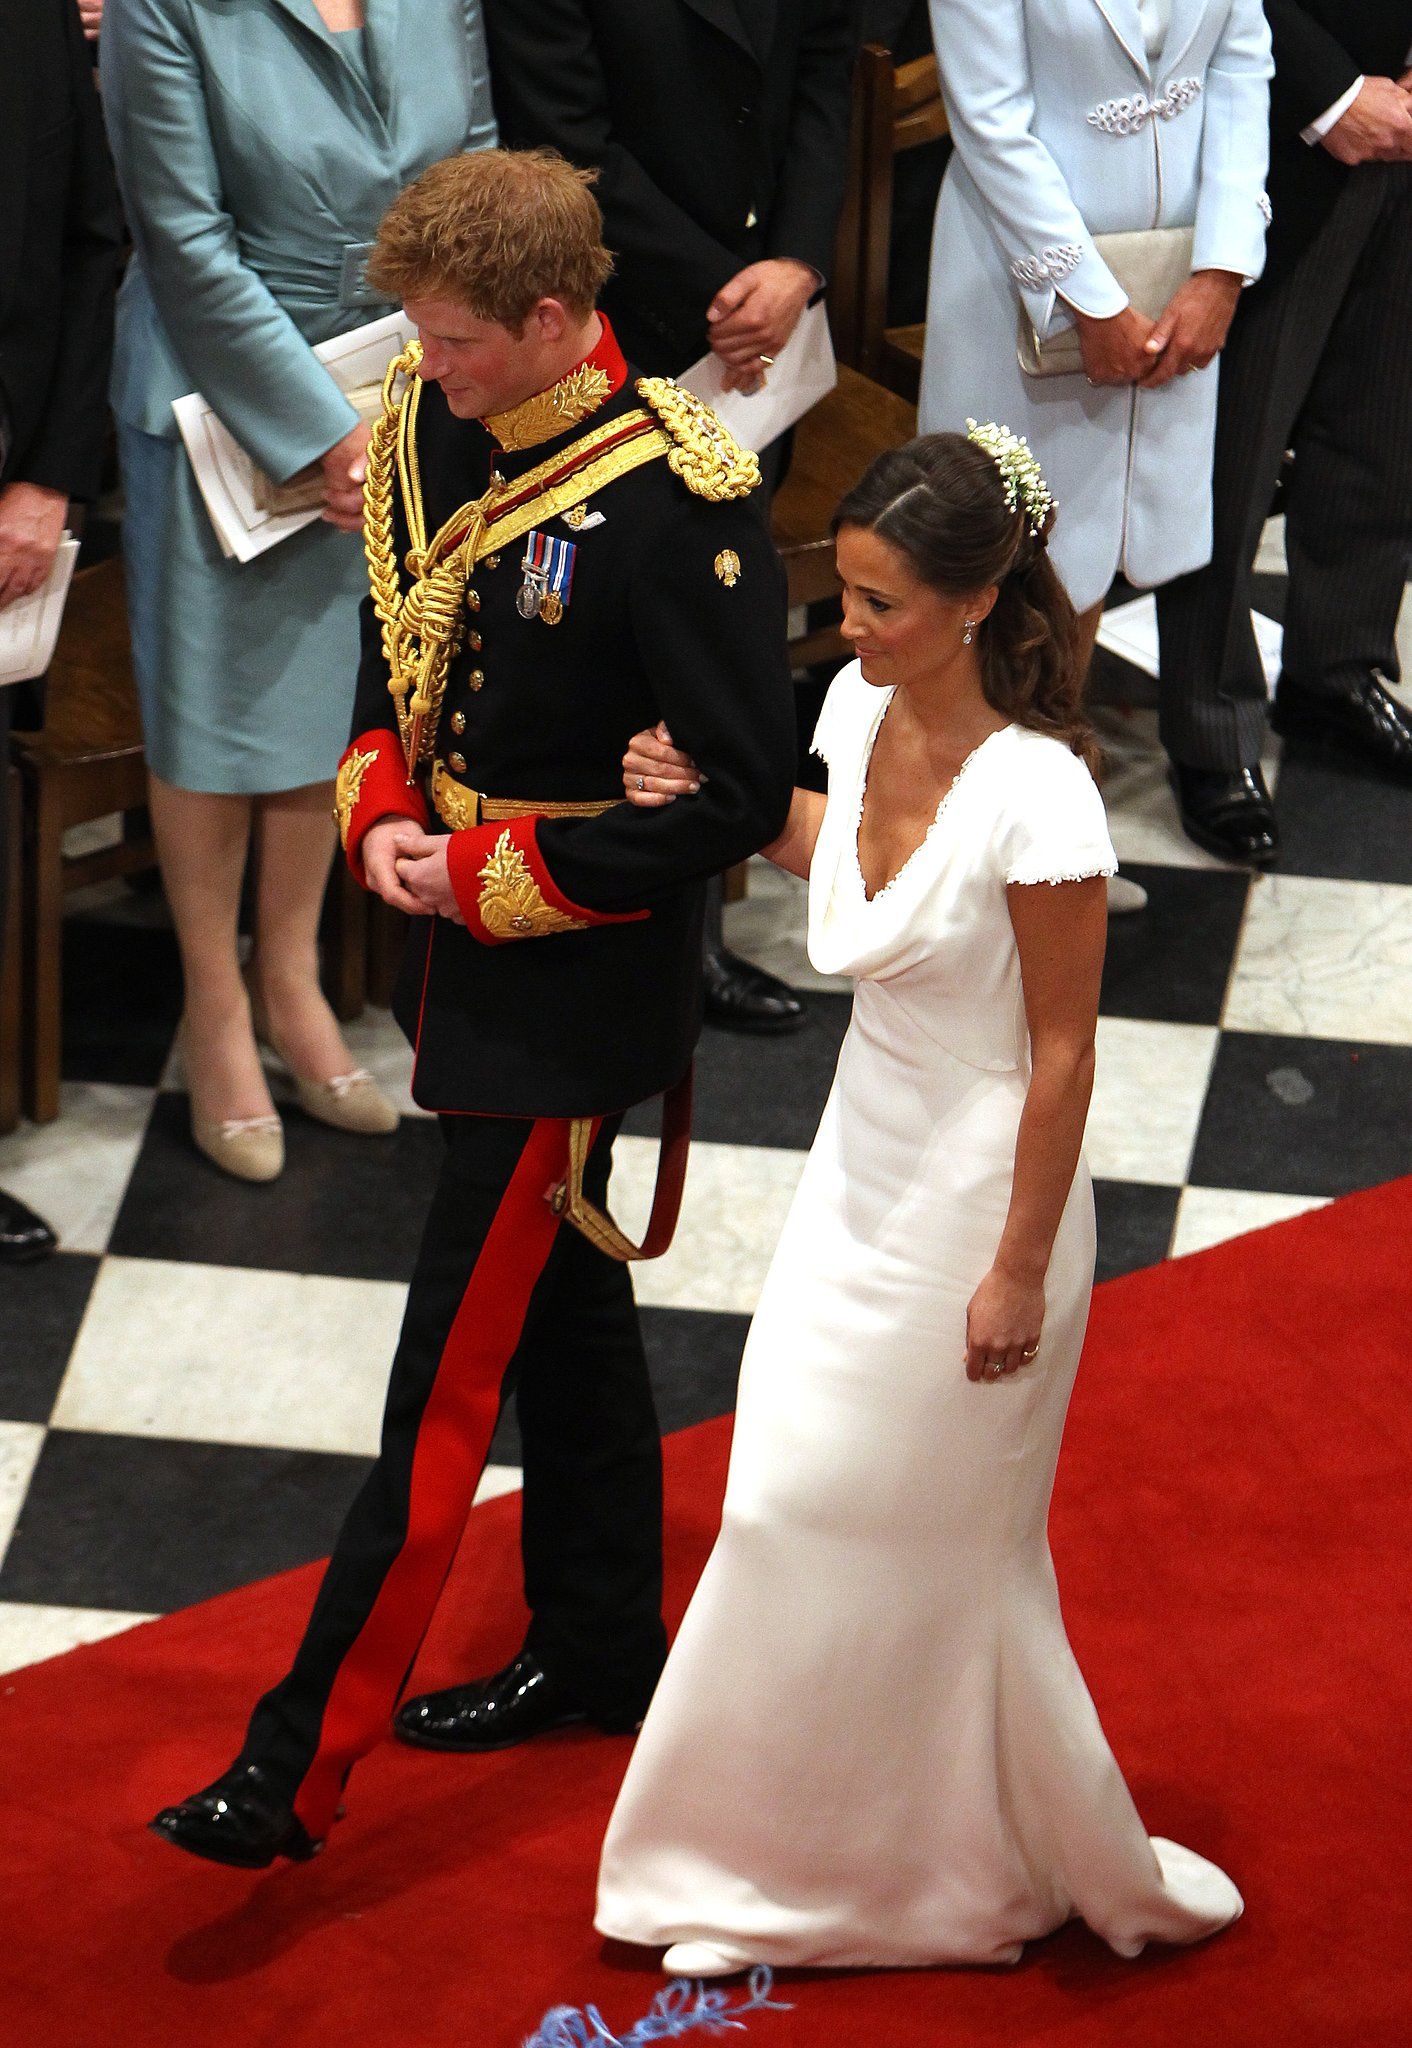 Prince Harry escorted Pippa Middleton out of Westminster Abbey after the wedding of Prince William and Kate Middleton in April 2011.